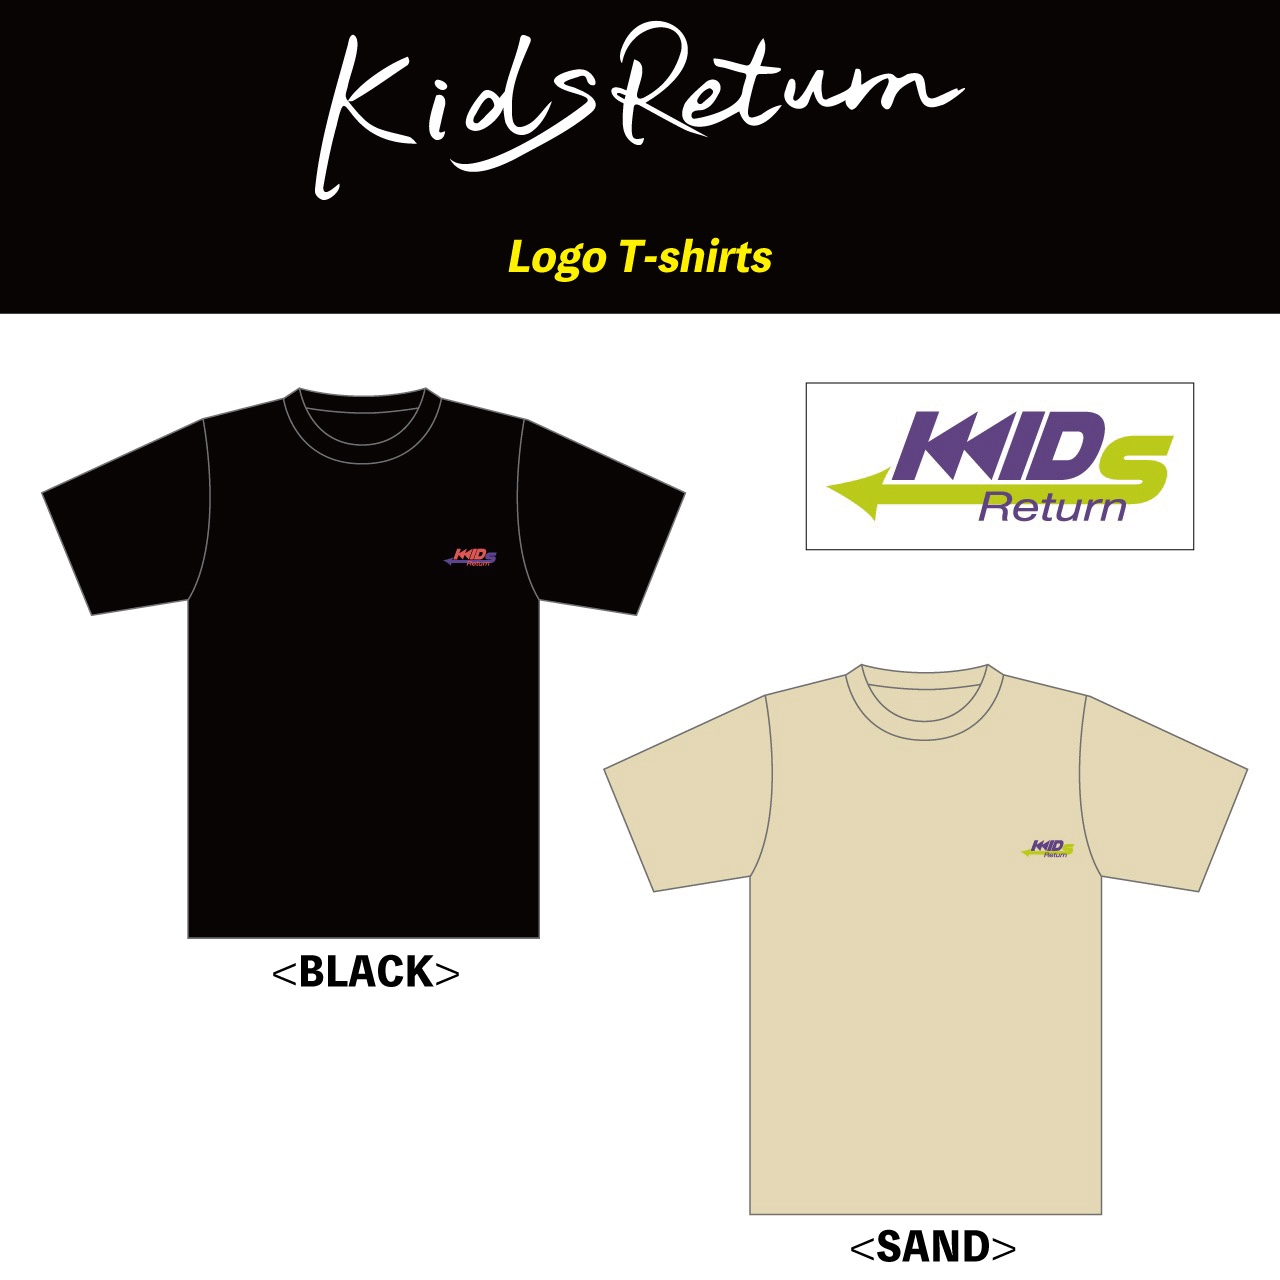 Kids Return LOGO T-Shirts